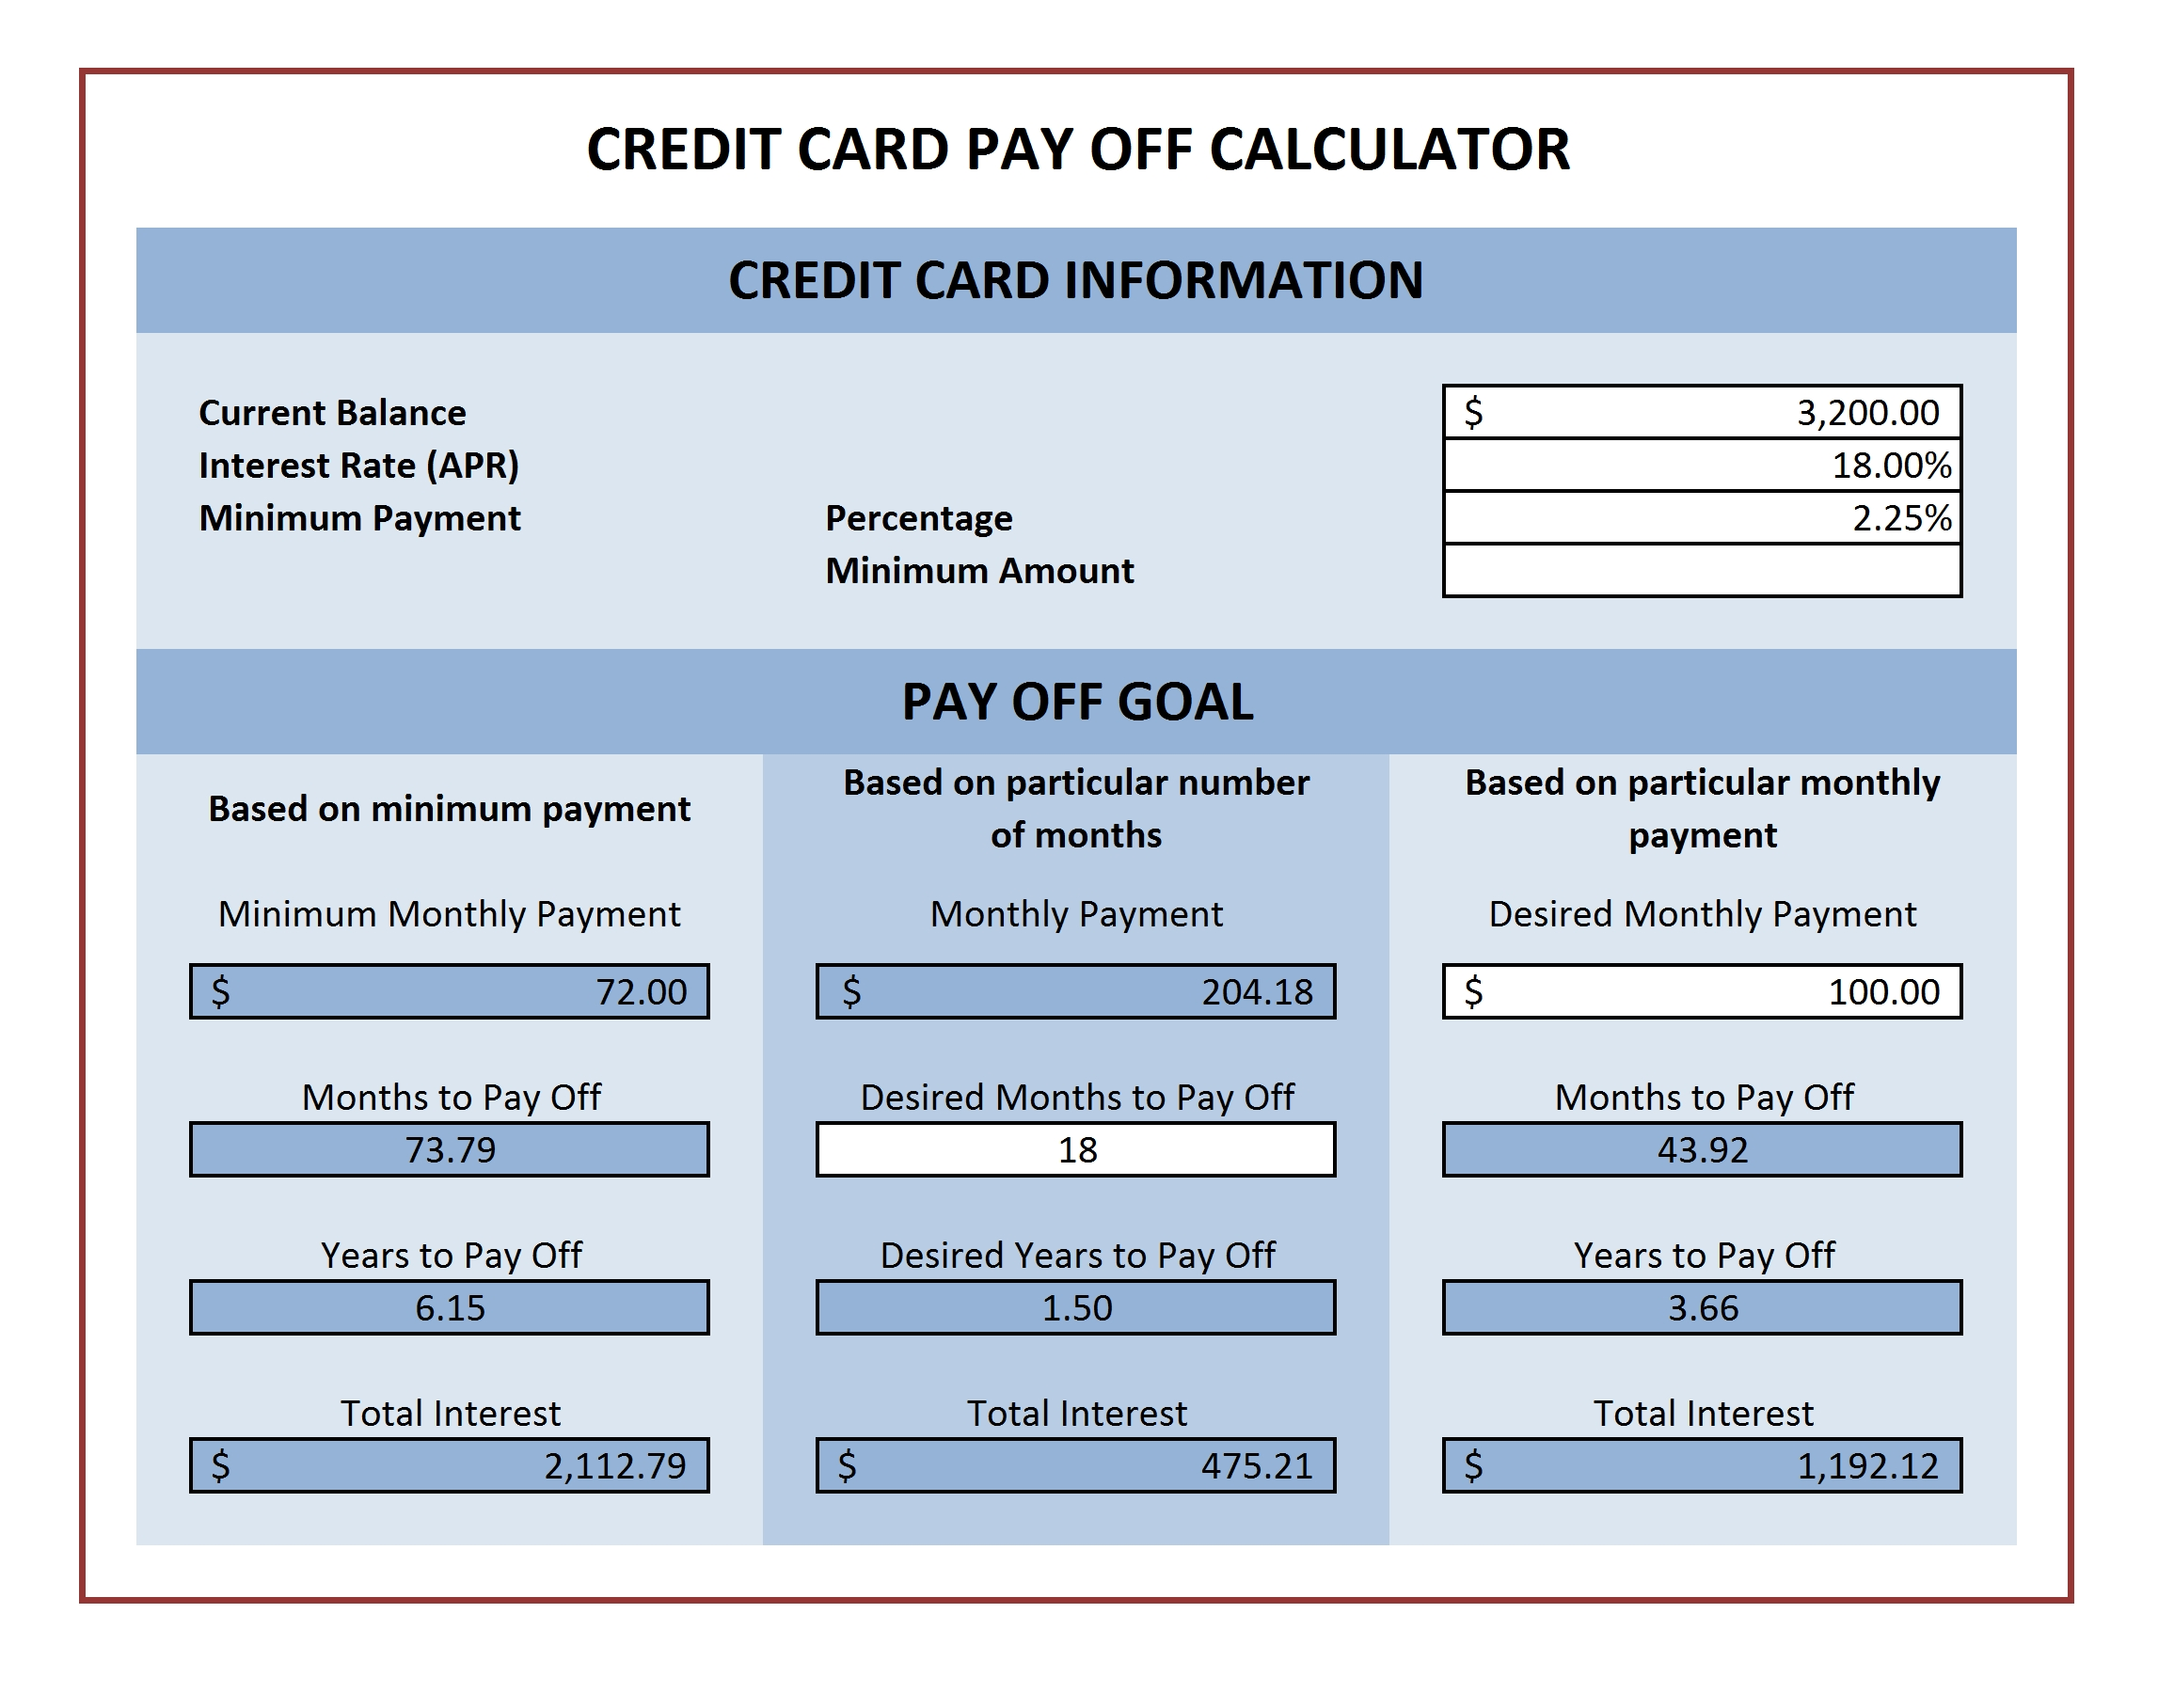 Credit card payoff calculator excel templates credit card payoff calculator nvjuhfo Gallery